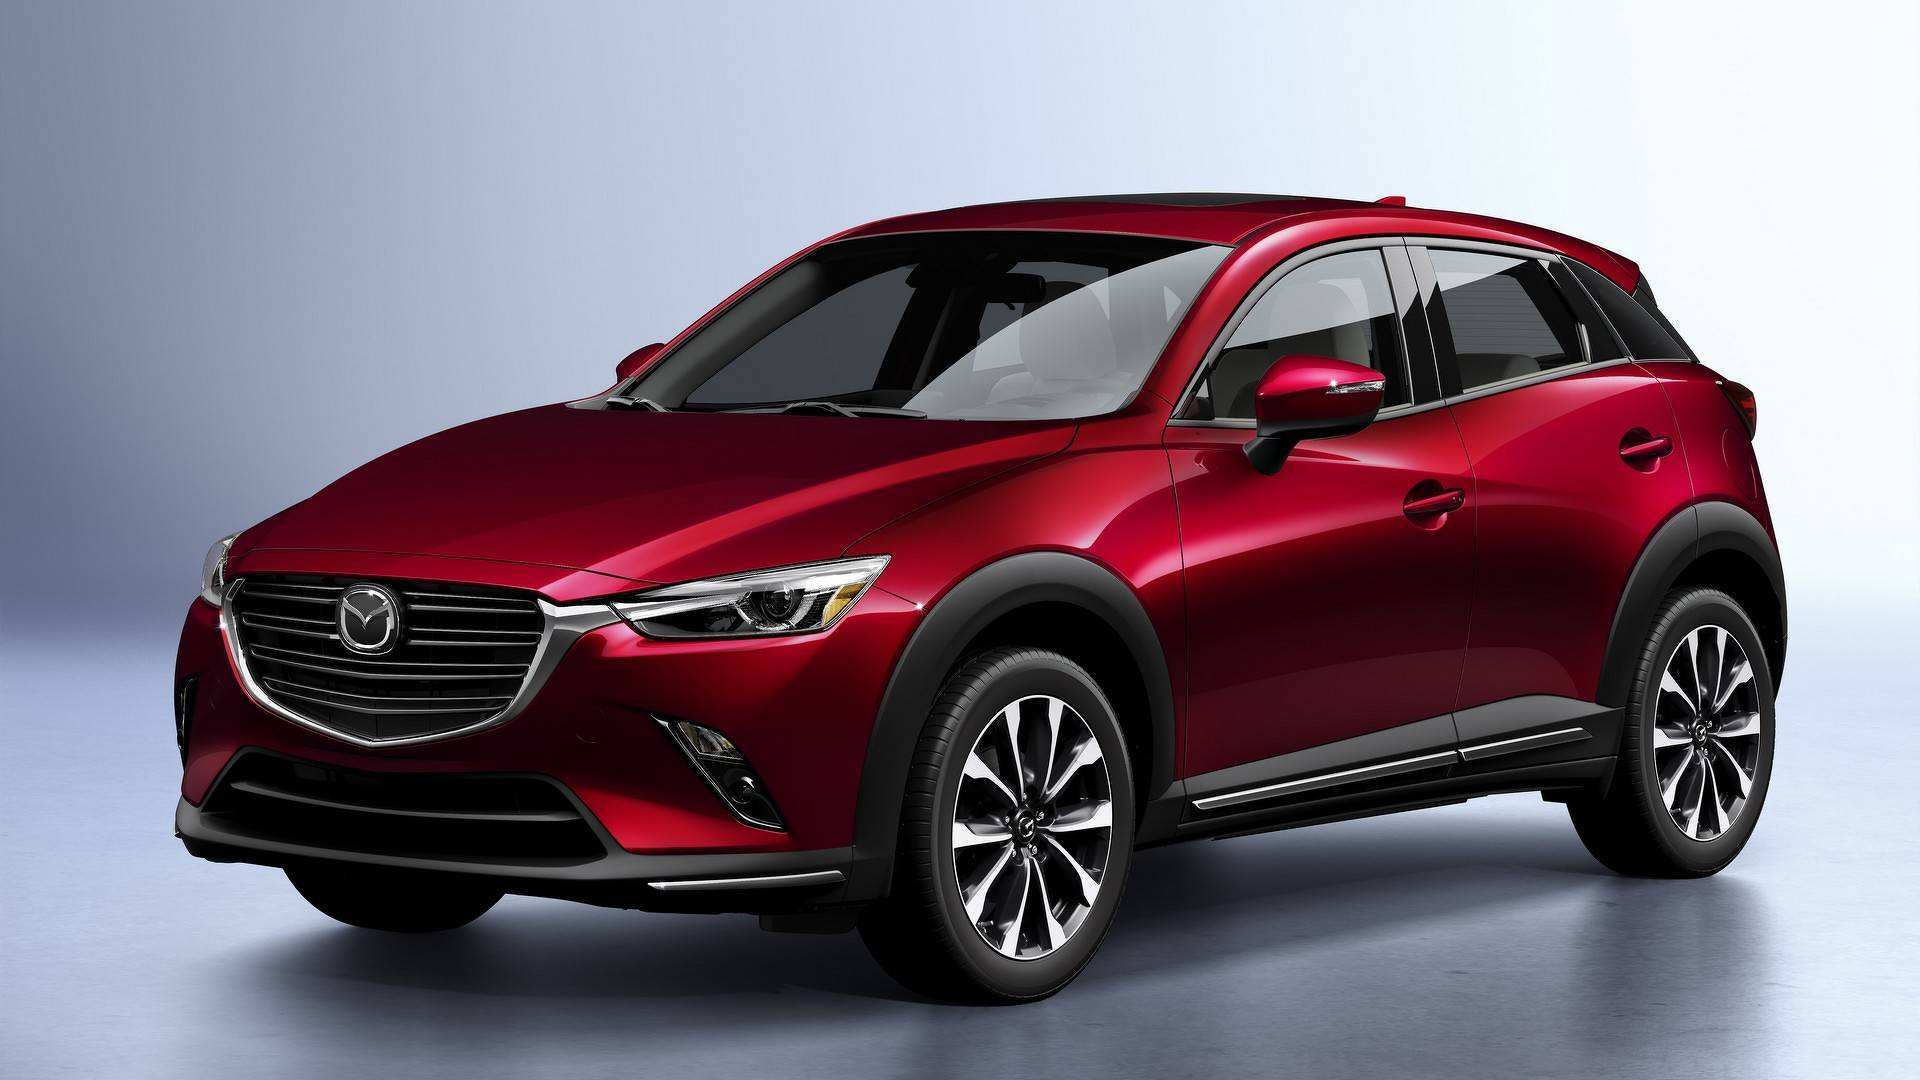 32 New 2020 Mazda CX 3 Rumors for 2020 Mazda CX 3